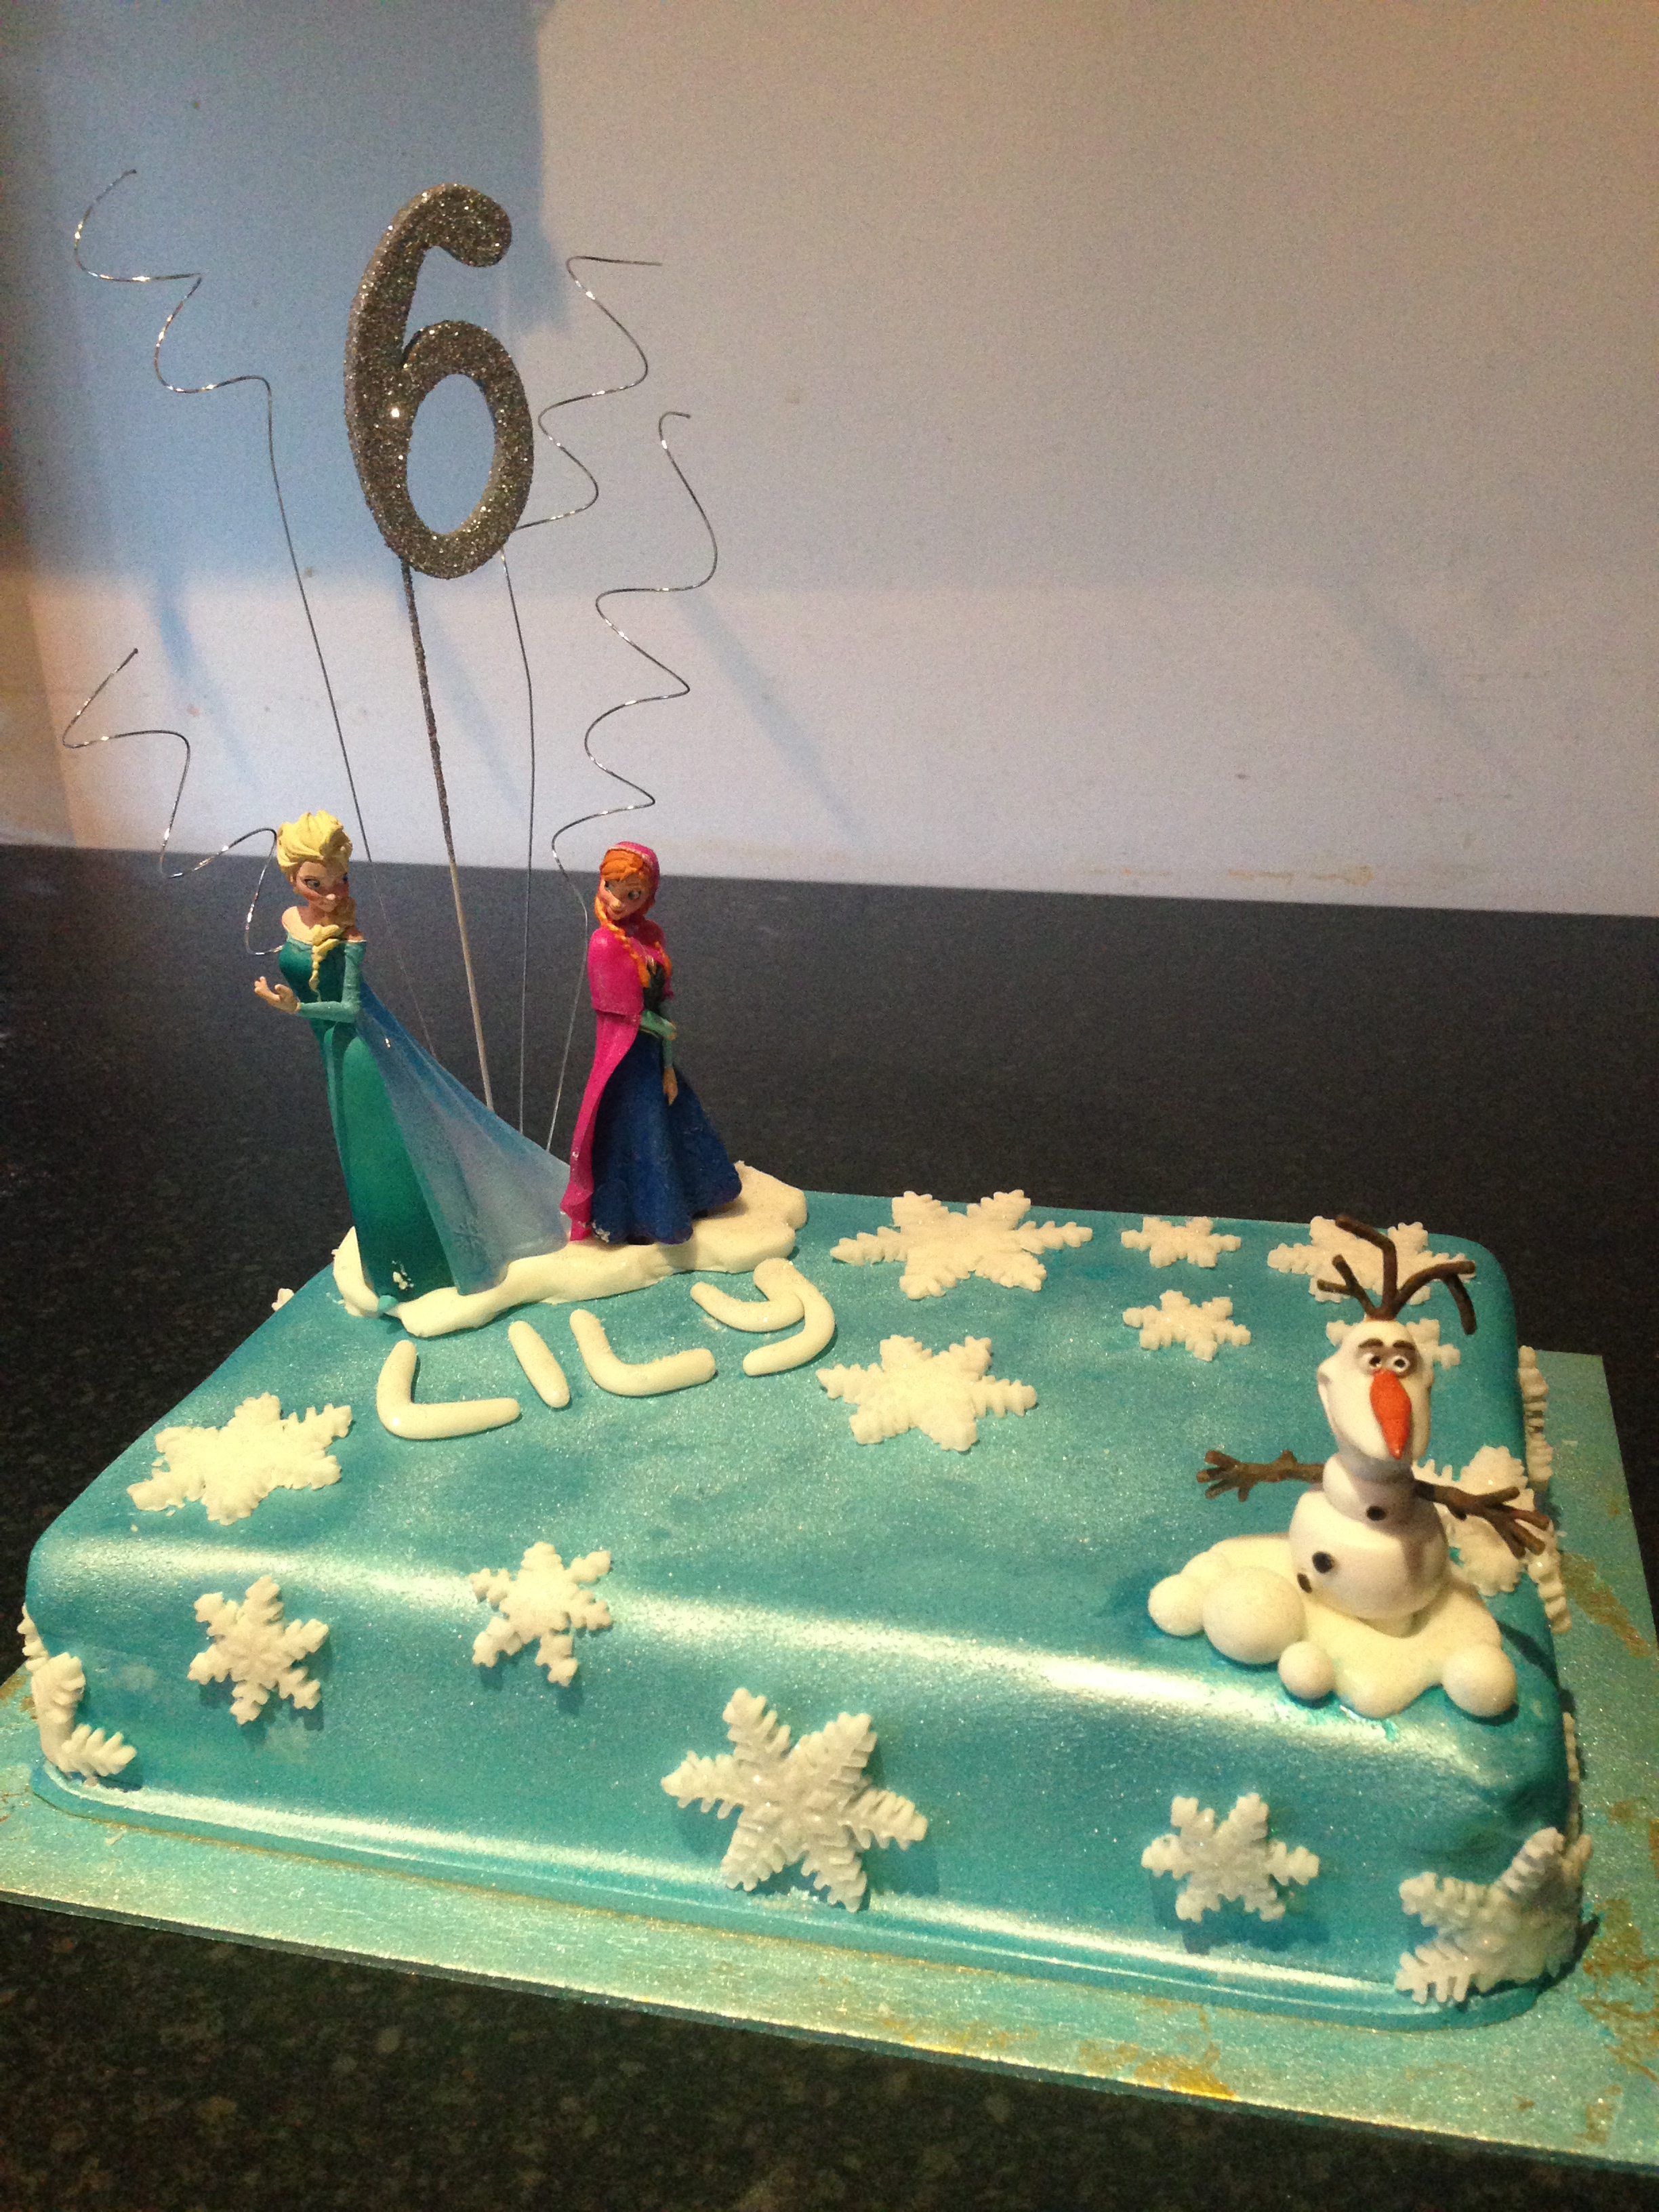 Frozen Cake Decorations Asda : Cheats Frozen Birthday Cake.   Diary of a Fat Bottomed Girl